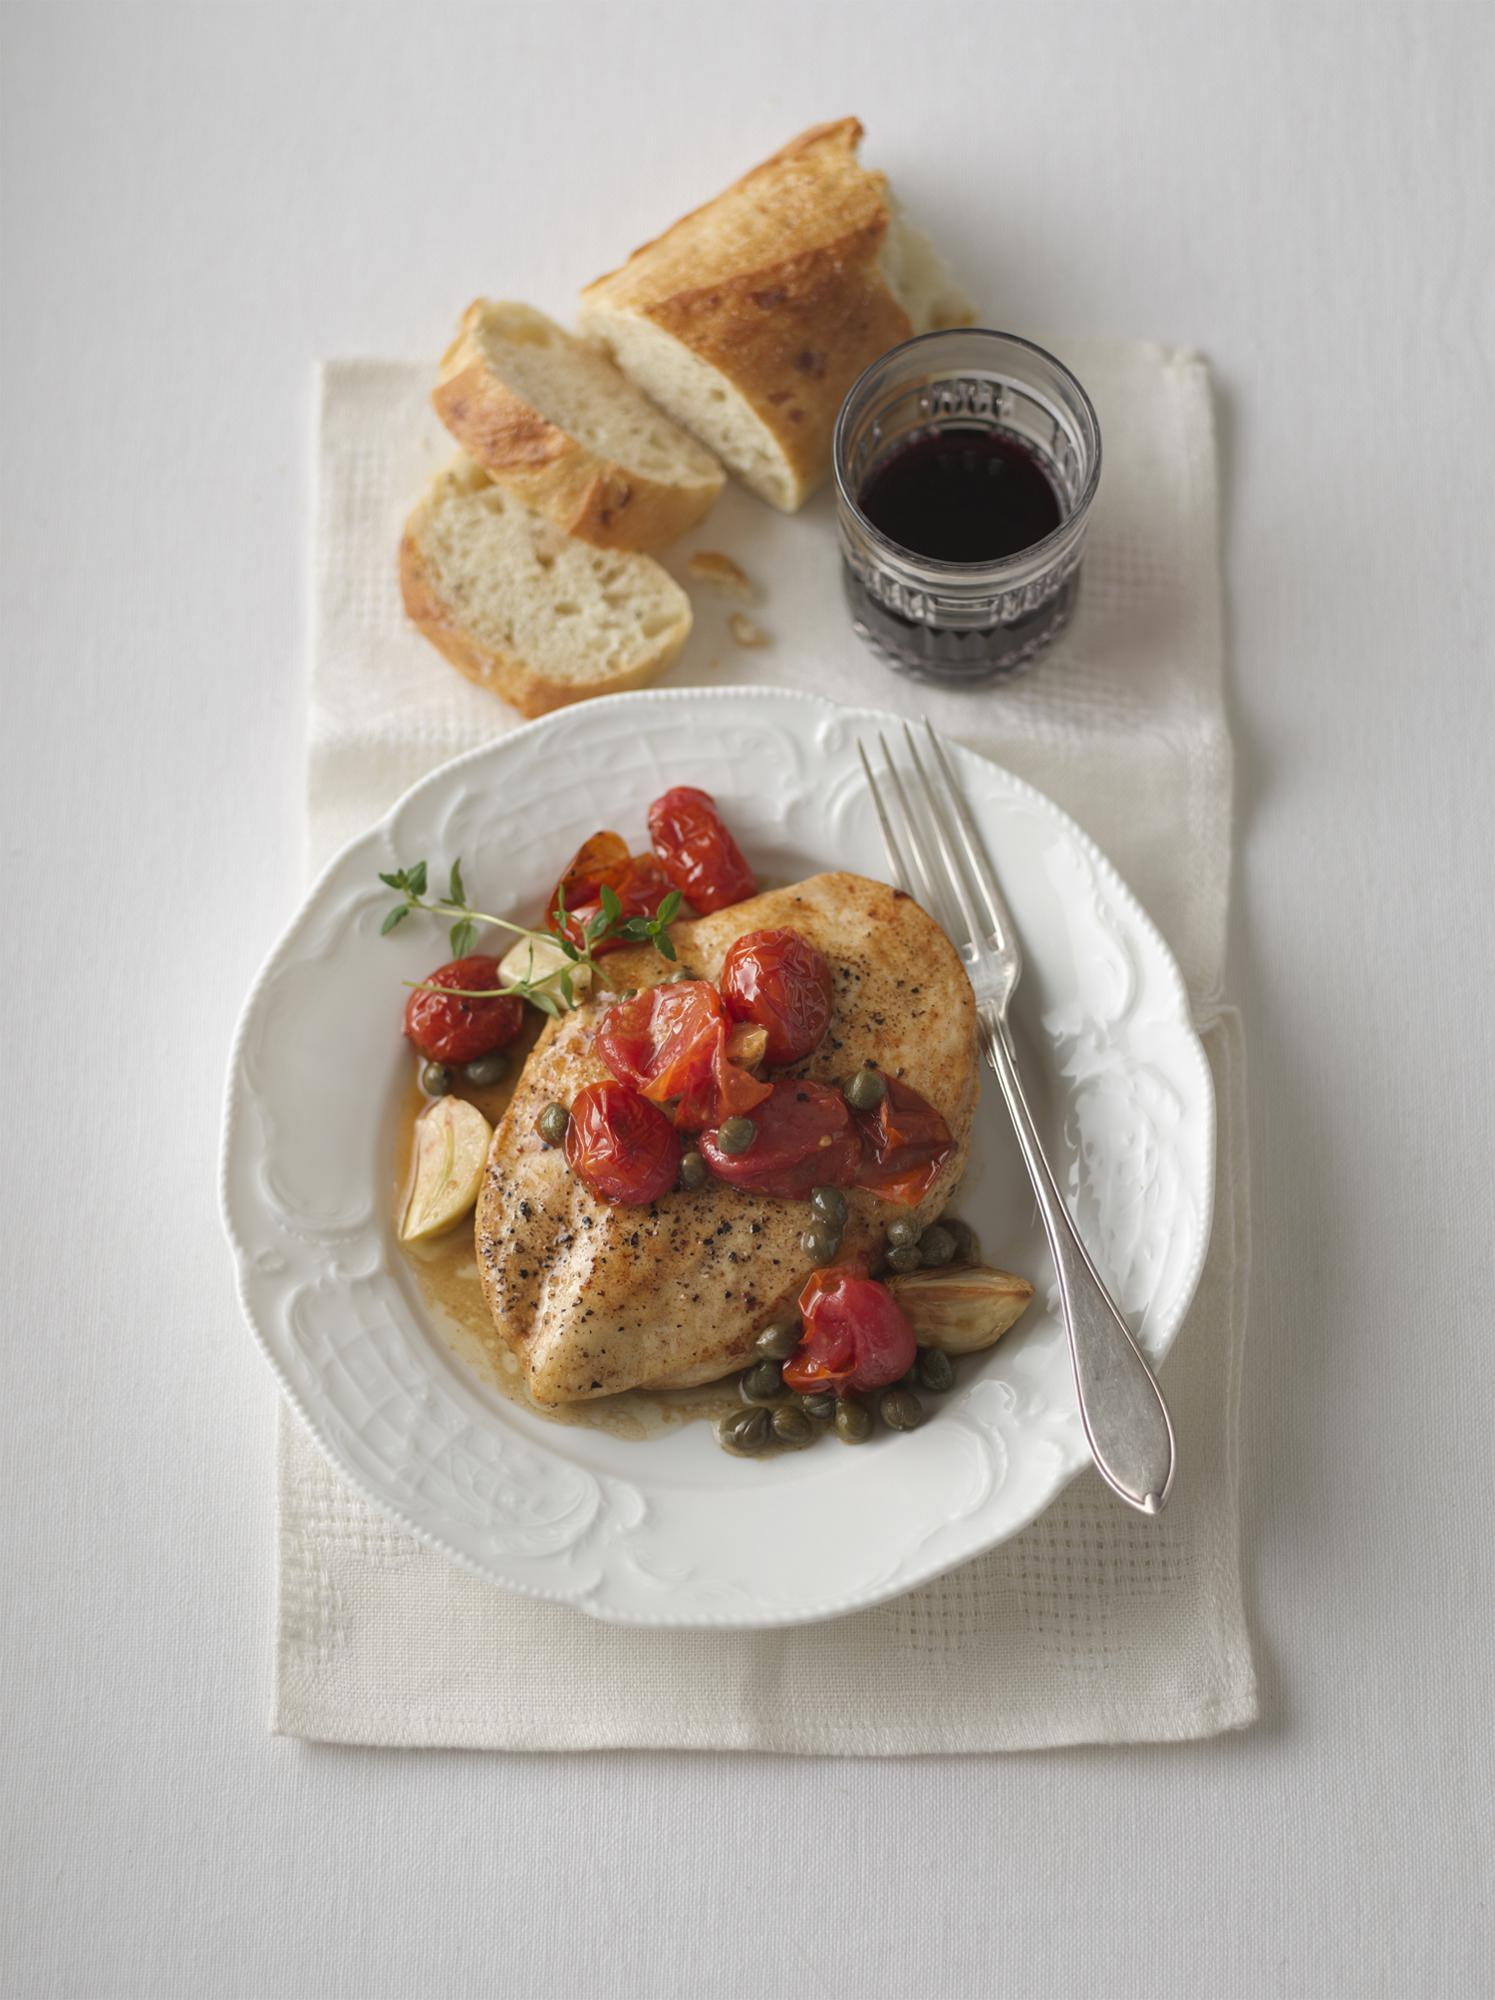 Marsala Chicken with Roasted Garlic & Caramelized Burst Tomatoes (2012 Grand Champion)